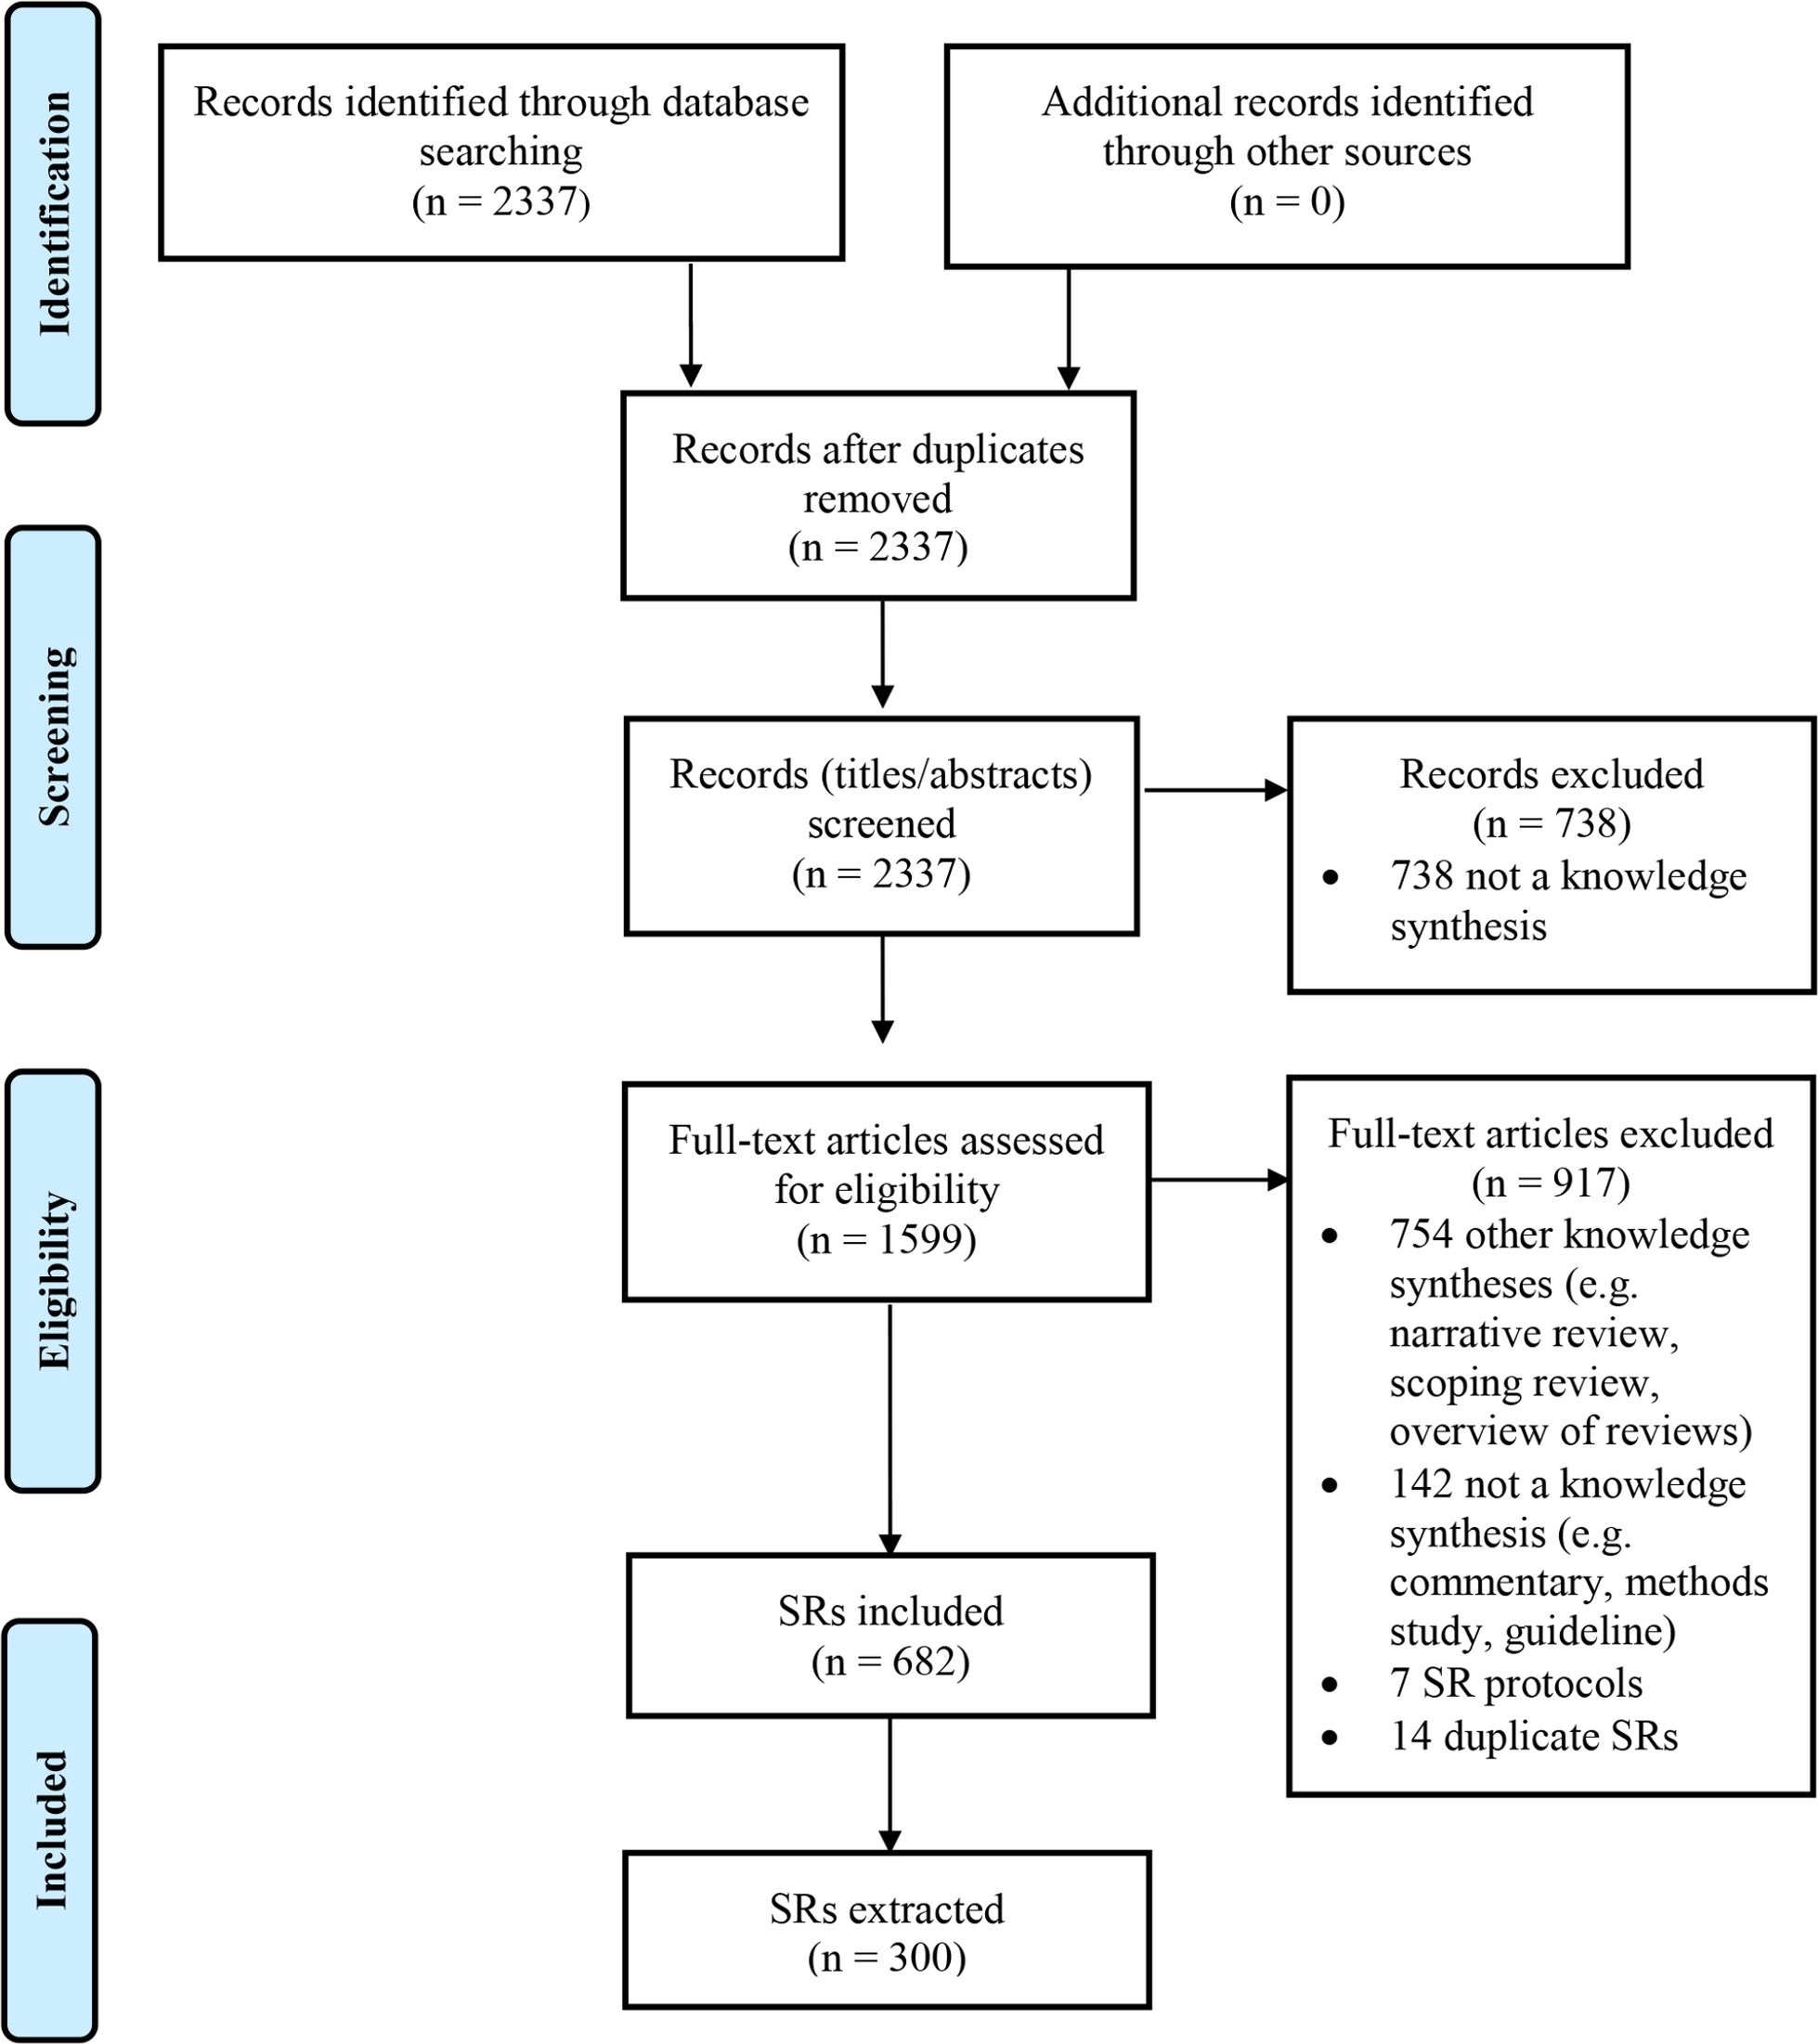 Flow diagram of identification, screening, and inclusion of SRs.